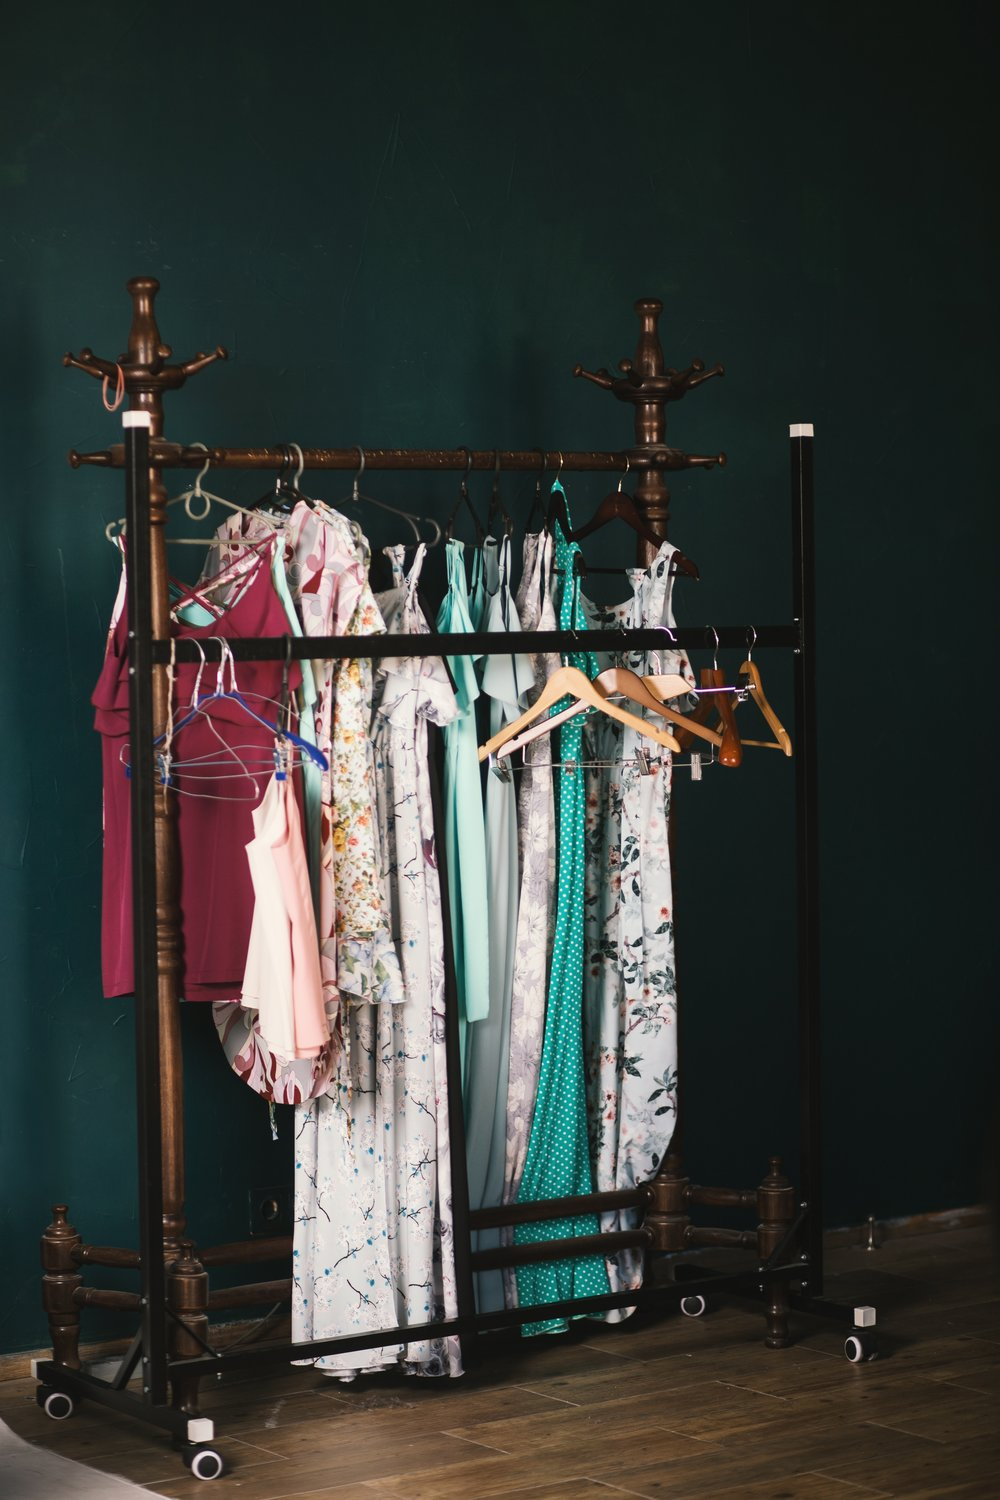 clothes-clothes-hanger-clothing-1148957.jpg